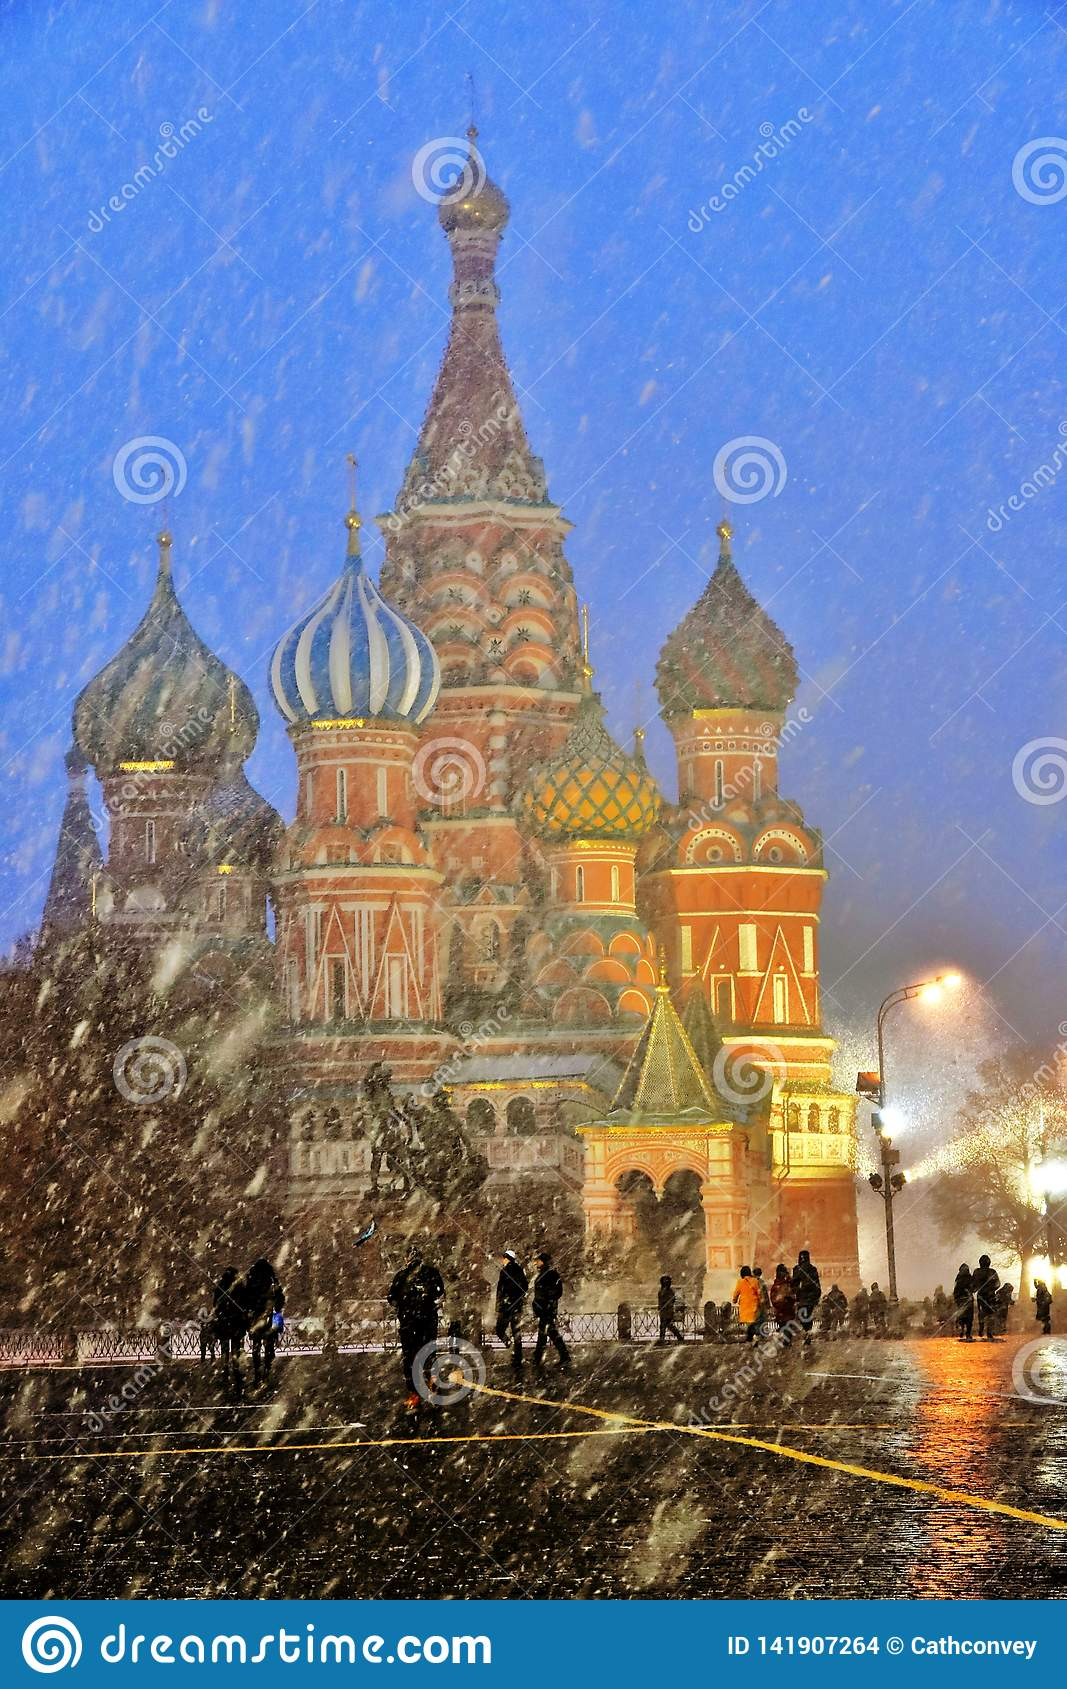 Extreme snowfall on the Red Square in Moscow.